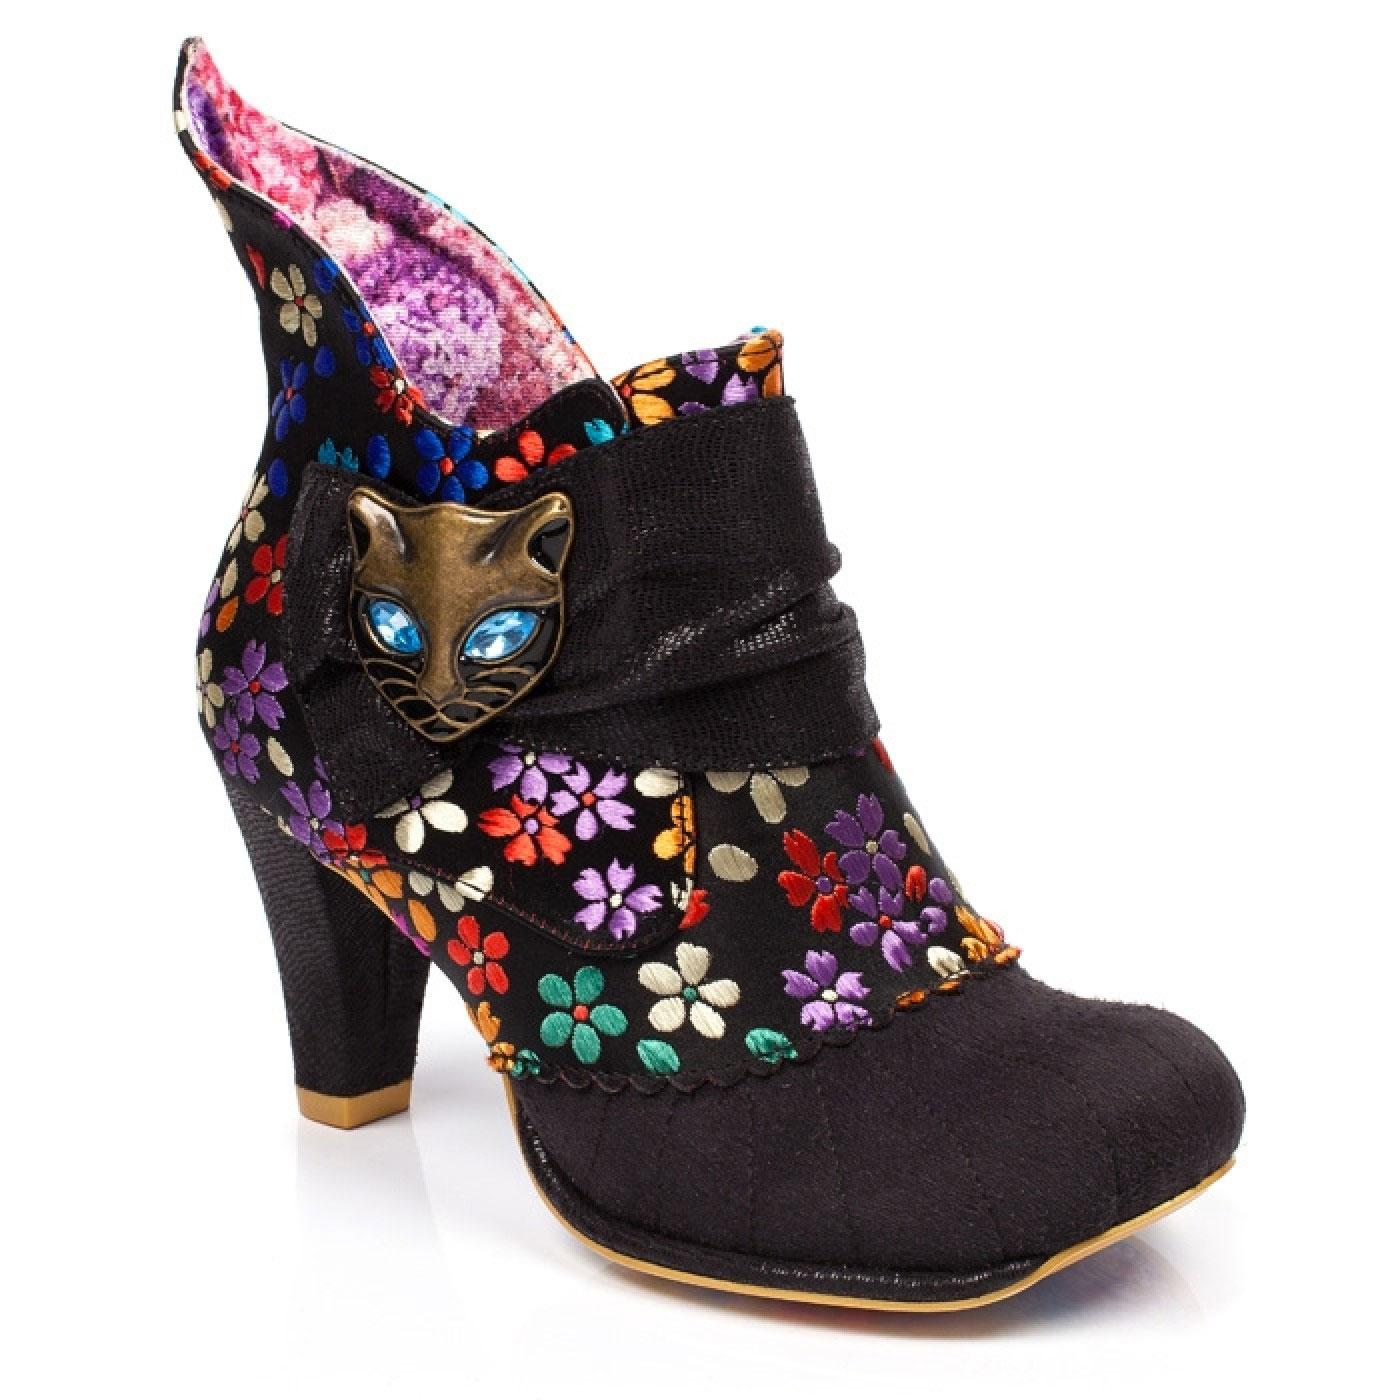 Miaow IRREGULAR CHOICE Retro 60s Floral Boots Blk